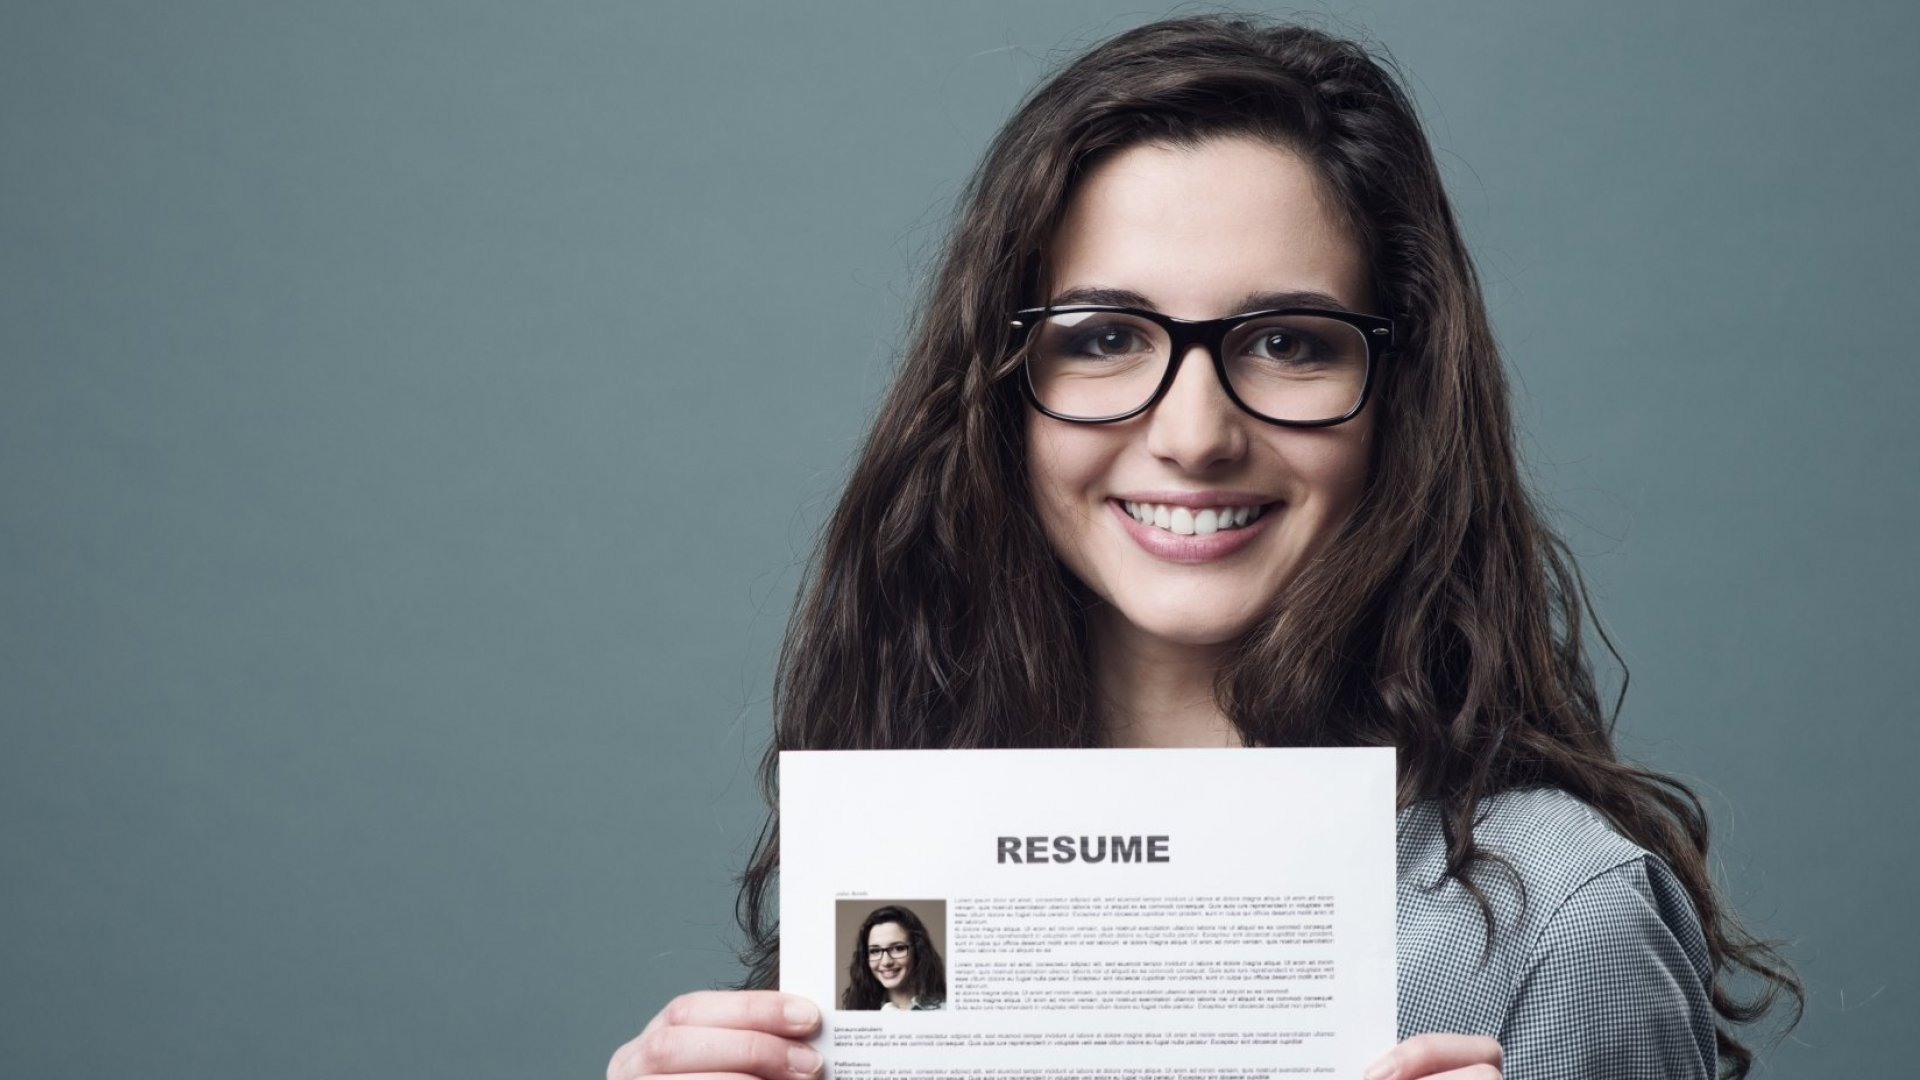 7 Mistakes That Make Your Resume Look Really Unprofessional